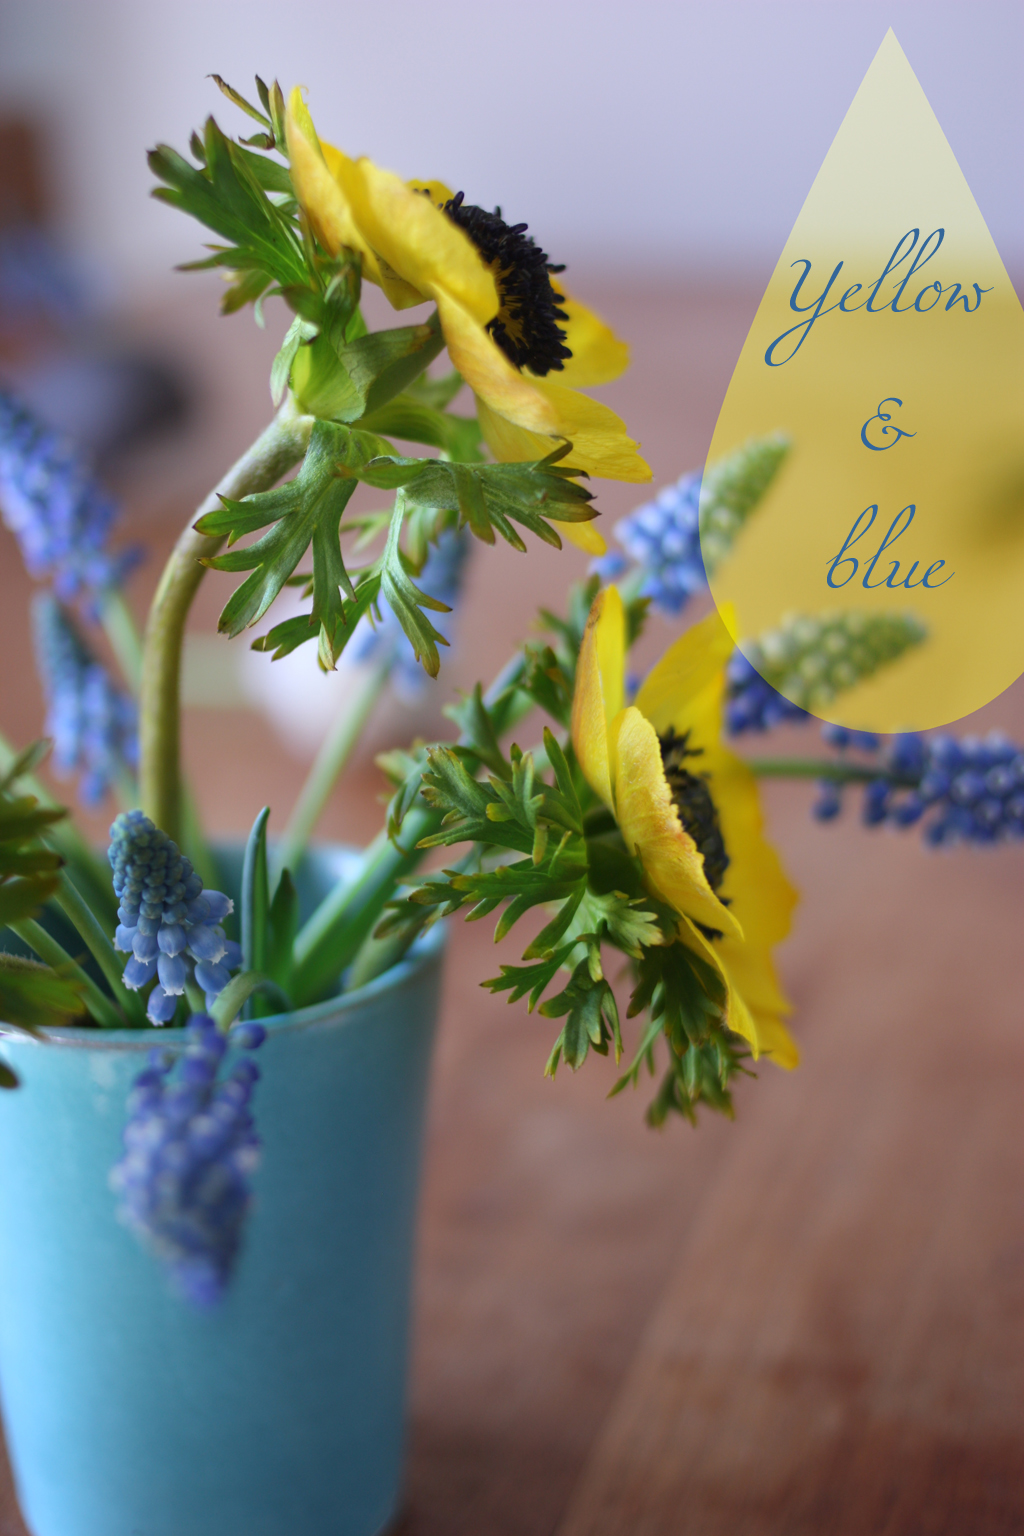 Yellow_and_blue_flowers